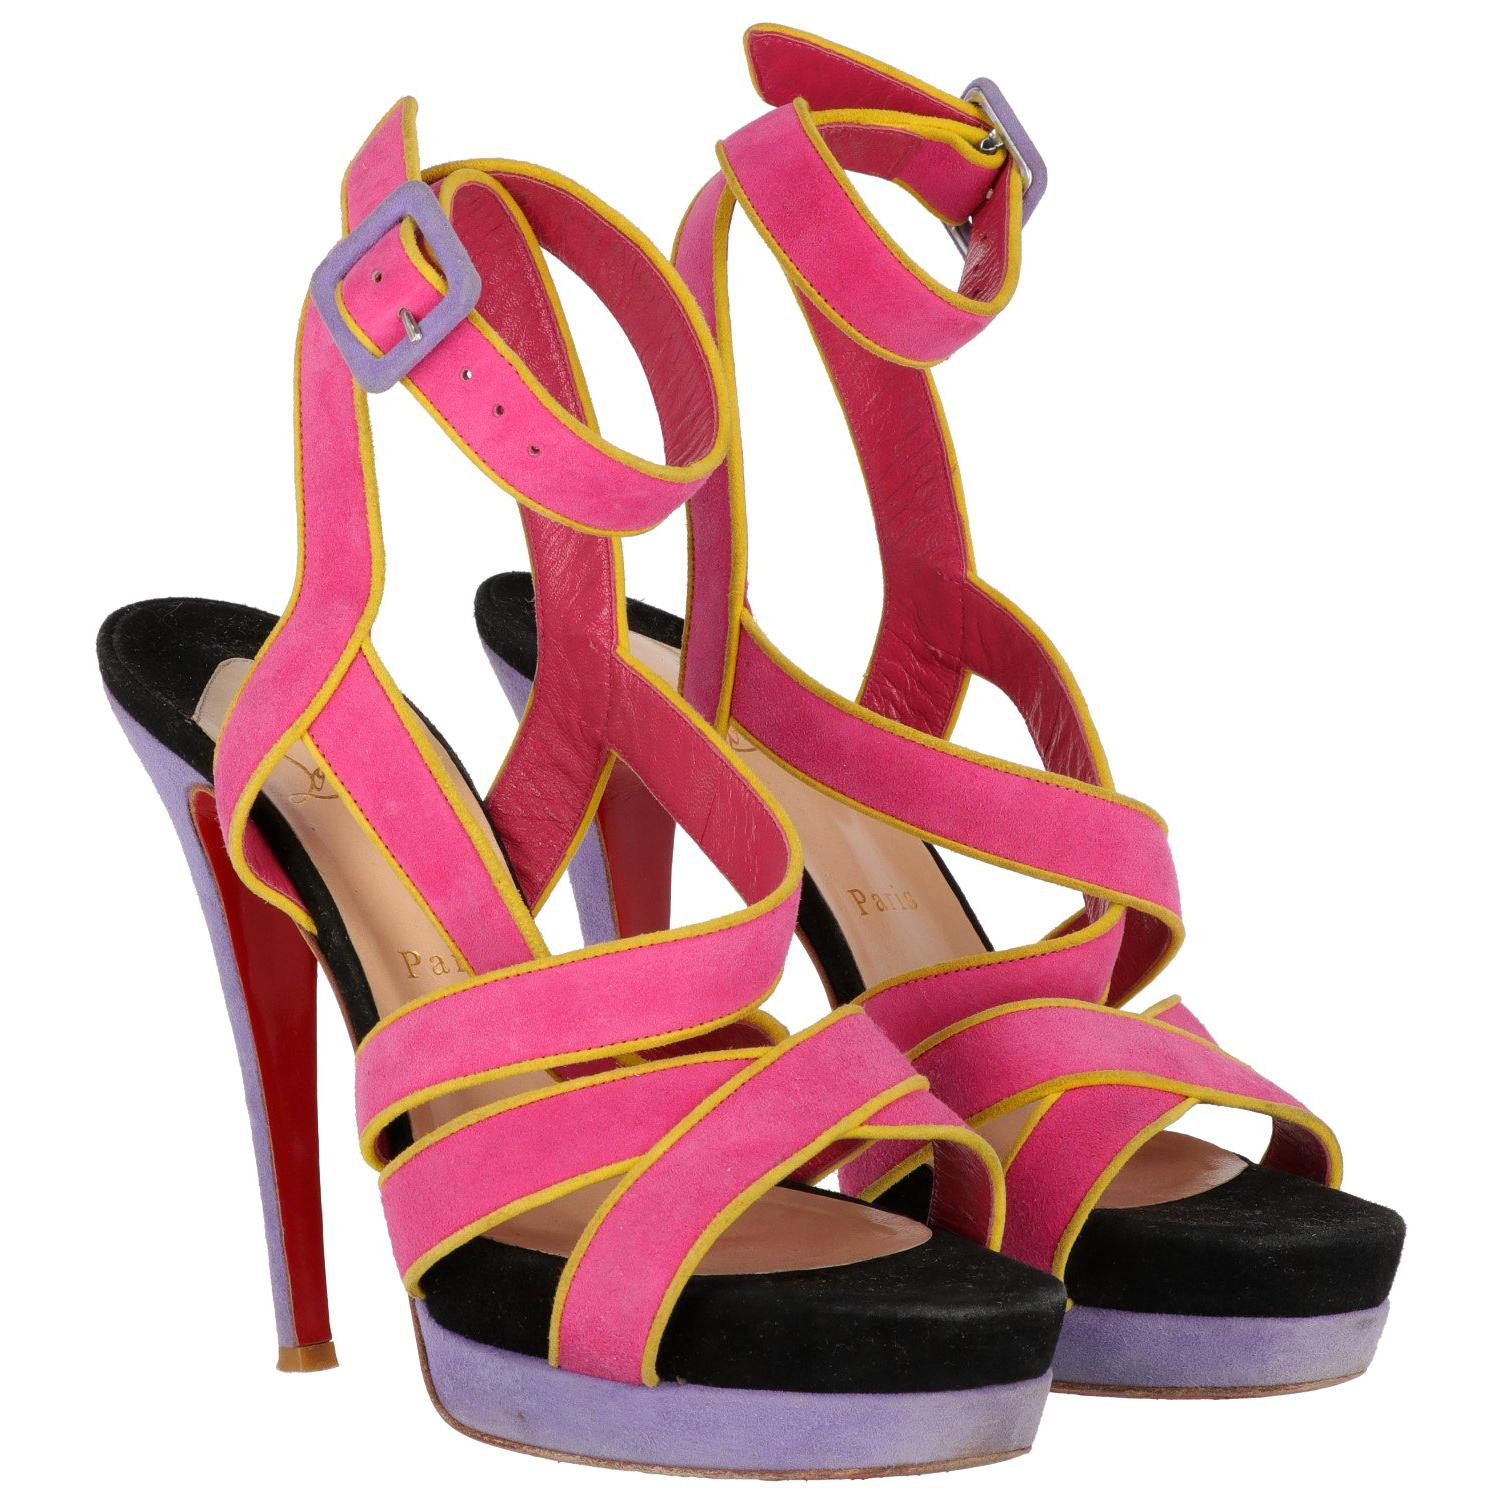 2000s Christian Louboutin Color Block Sandals